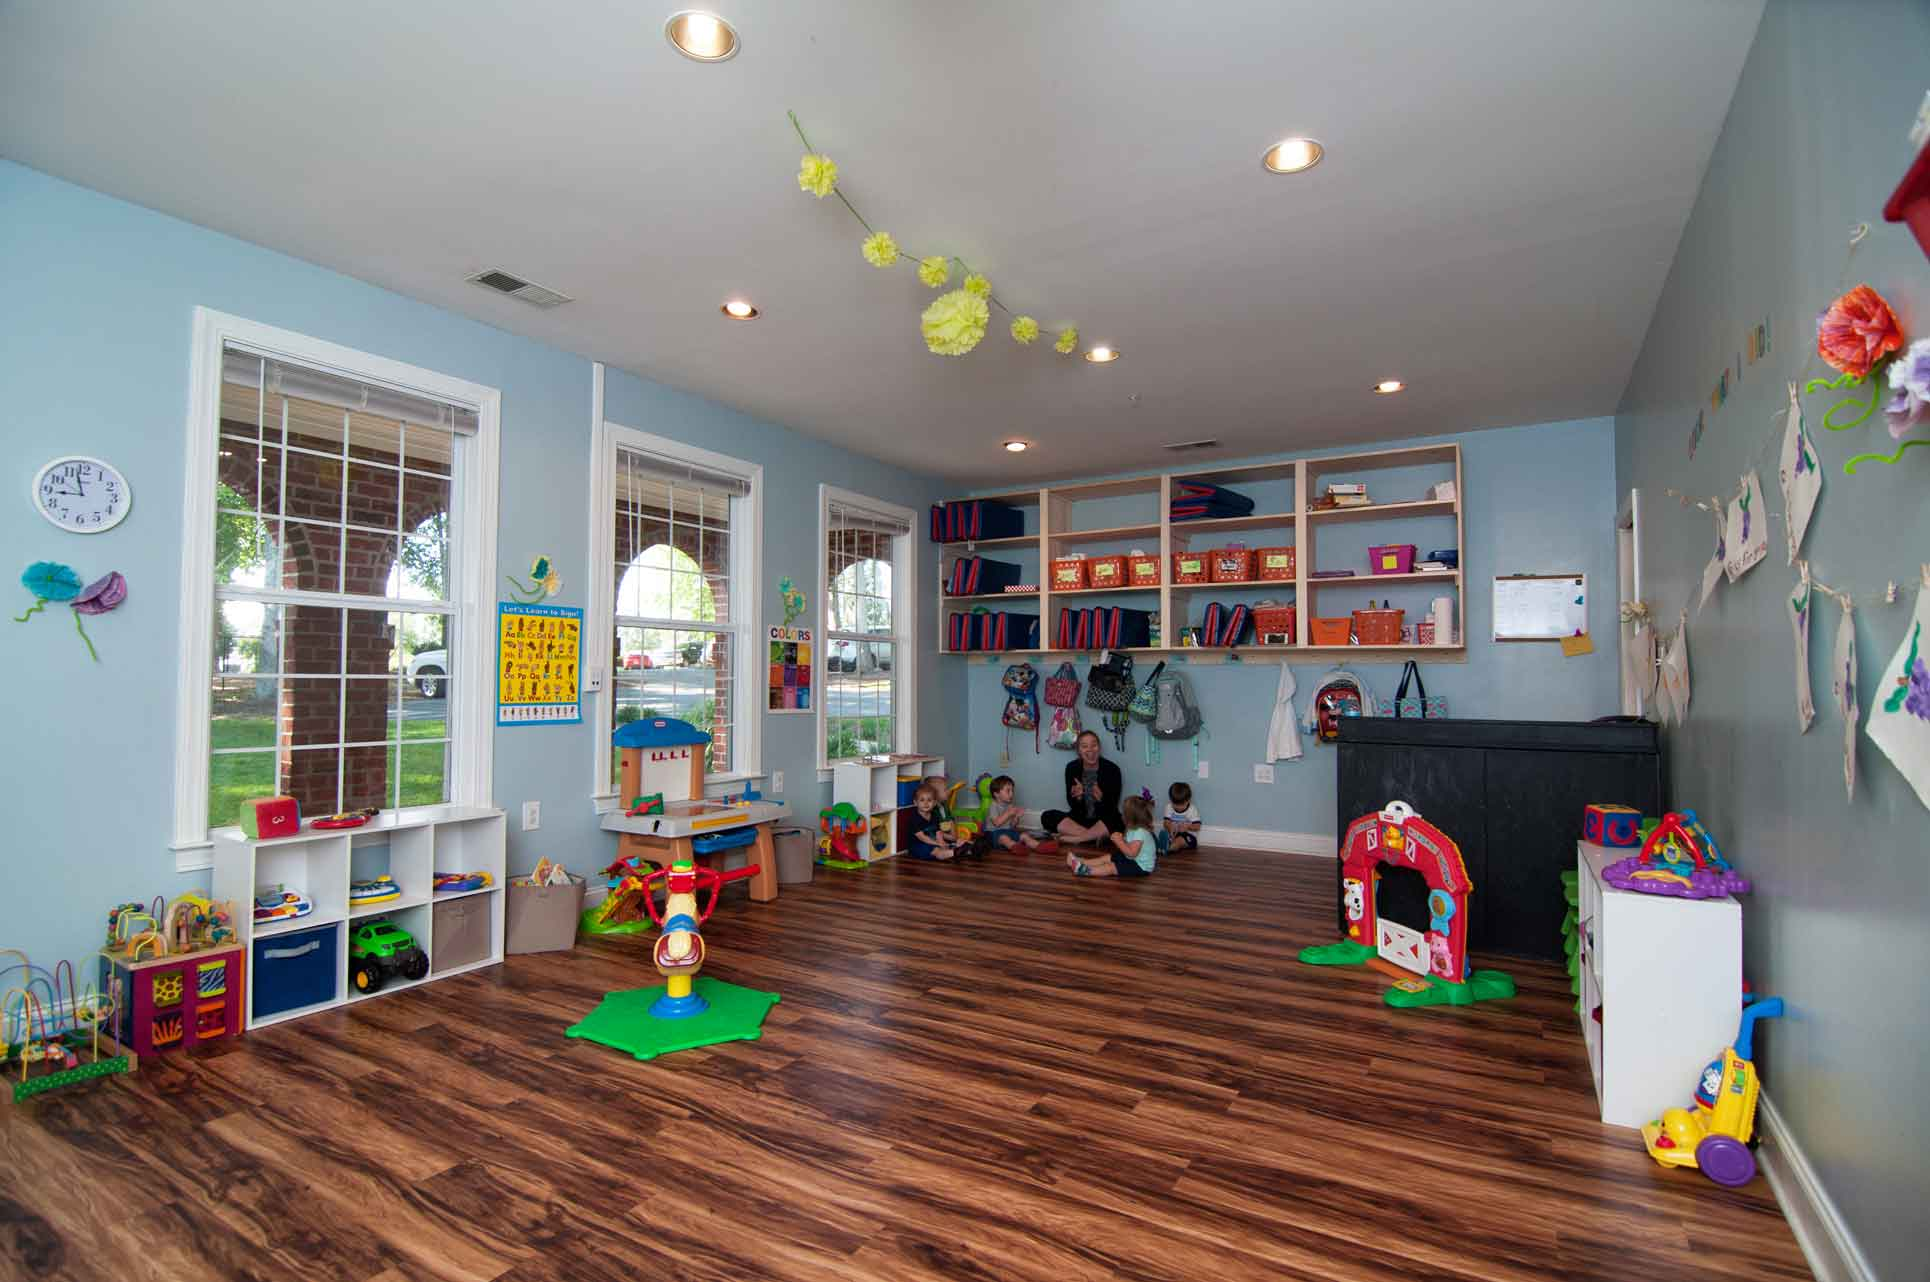 Modern-and-Large-Preschool-Classrooms-at-Faith-Christian-Academy-in-McCleansville-NC